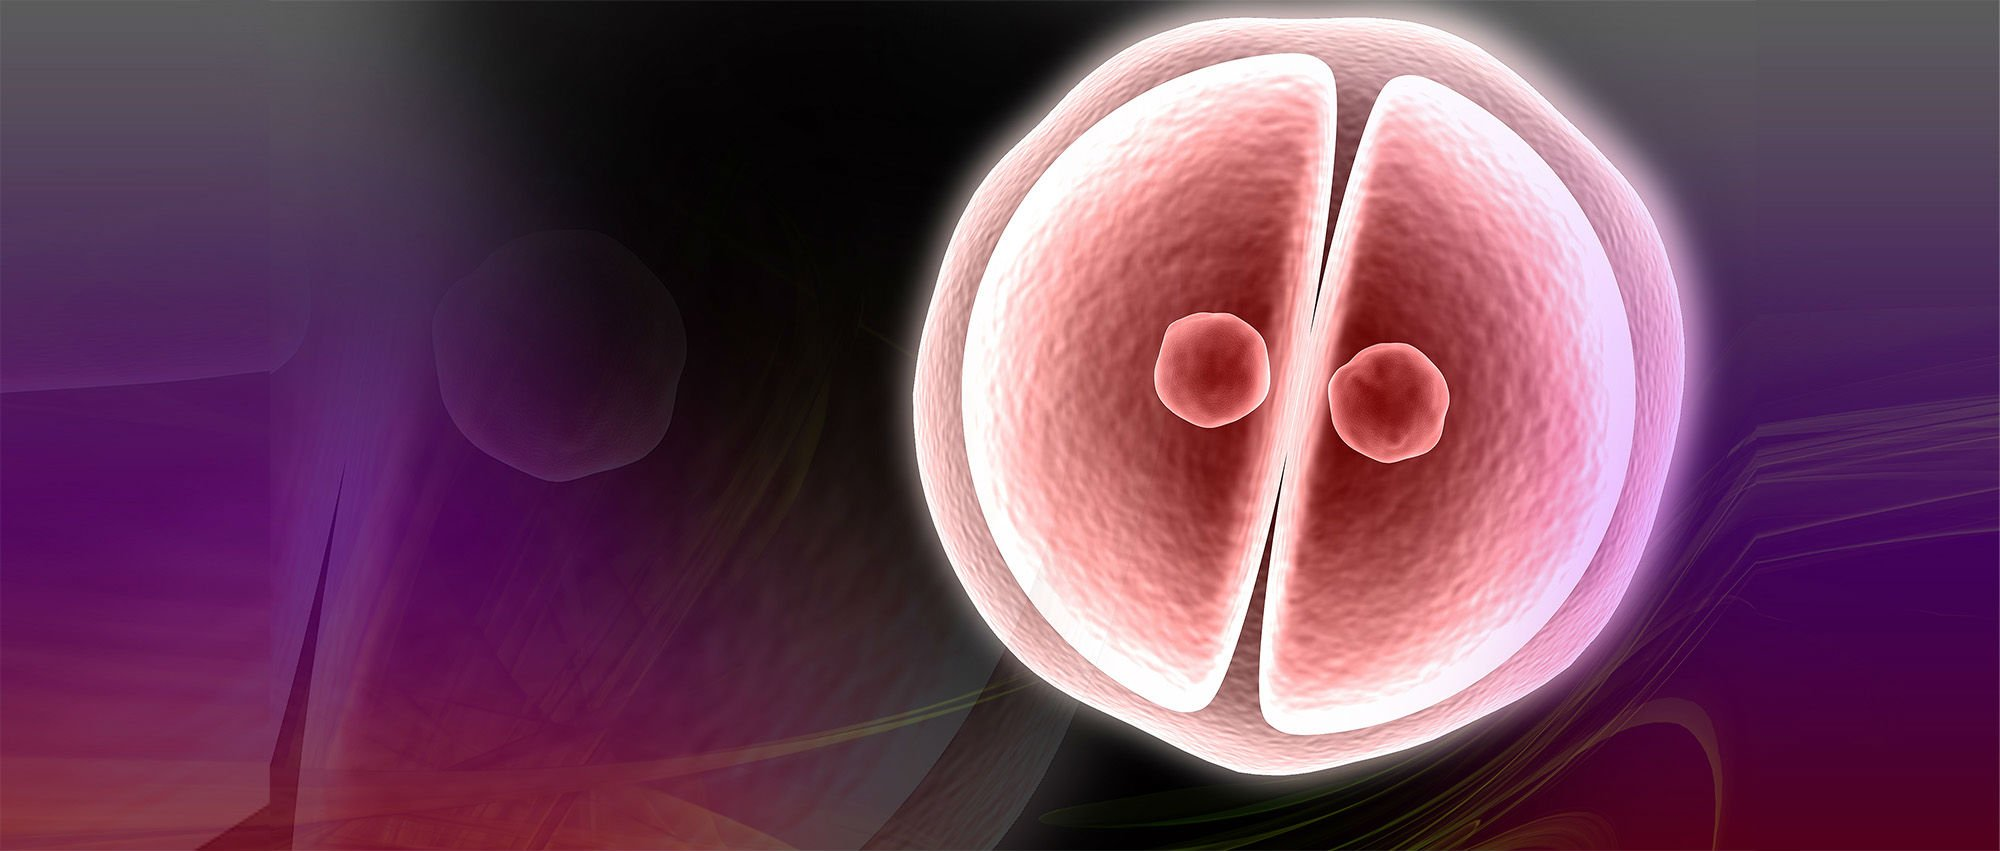 Carrying out the embryo implantation